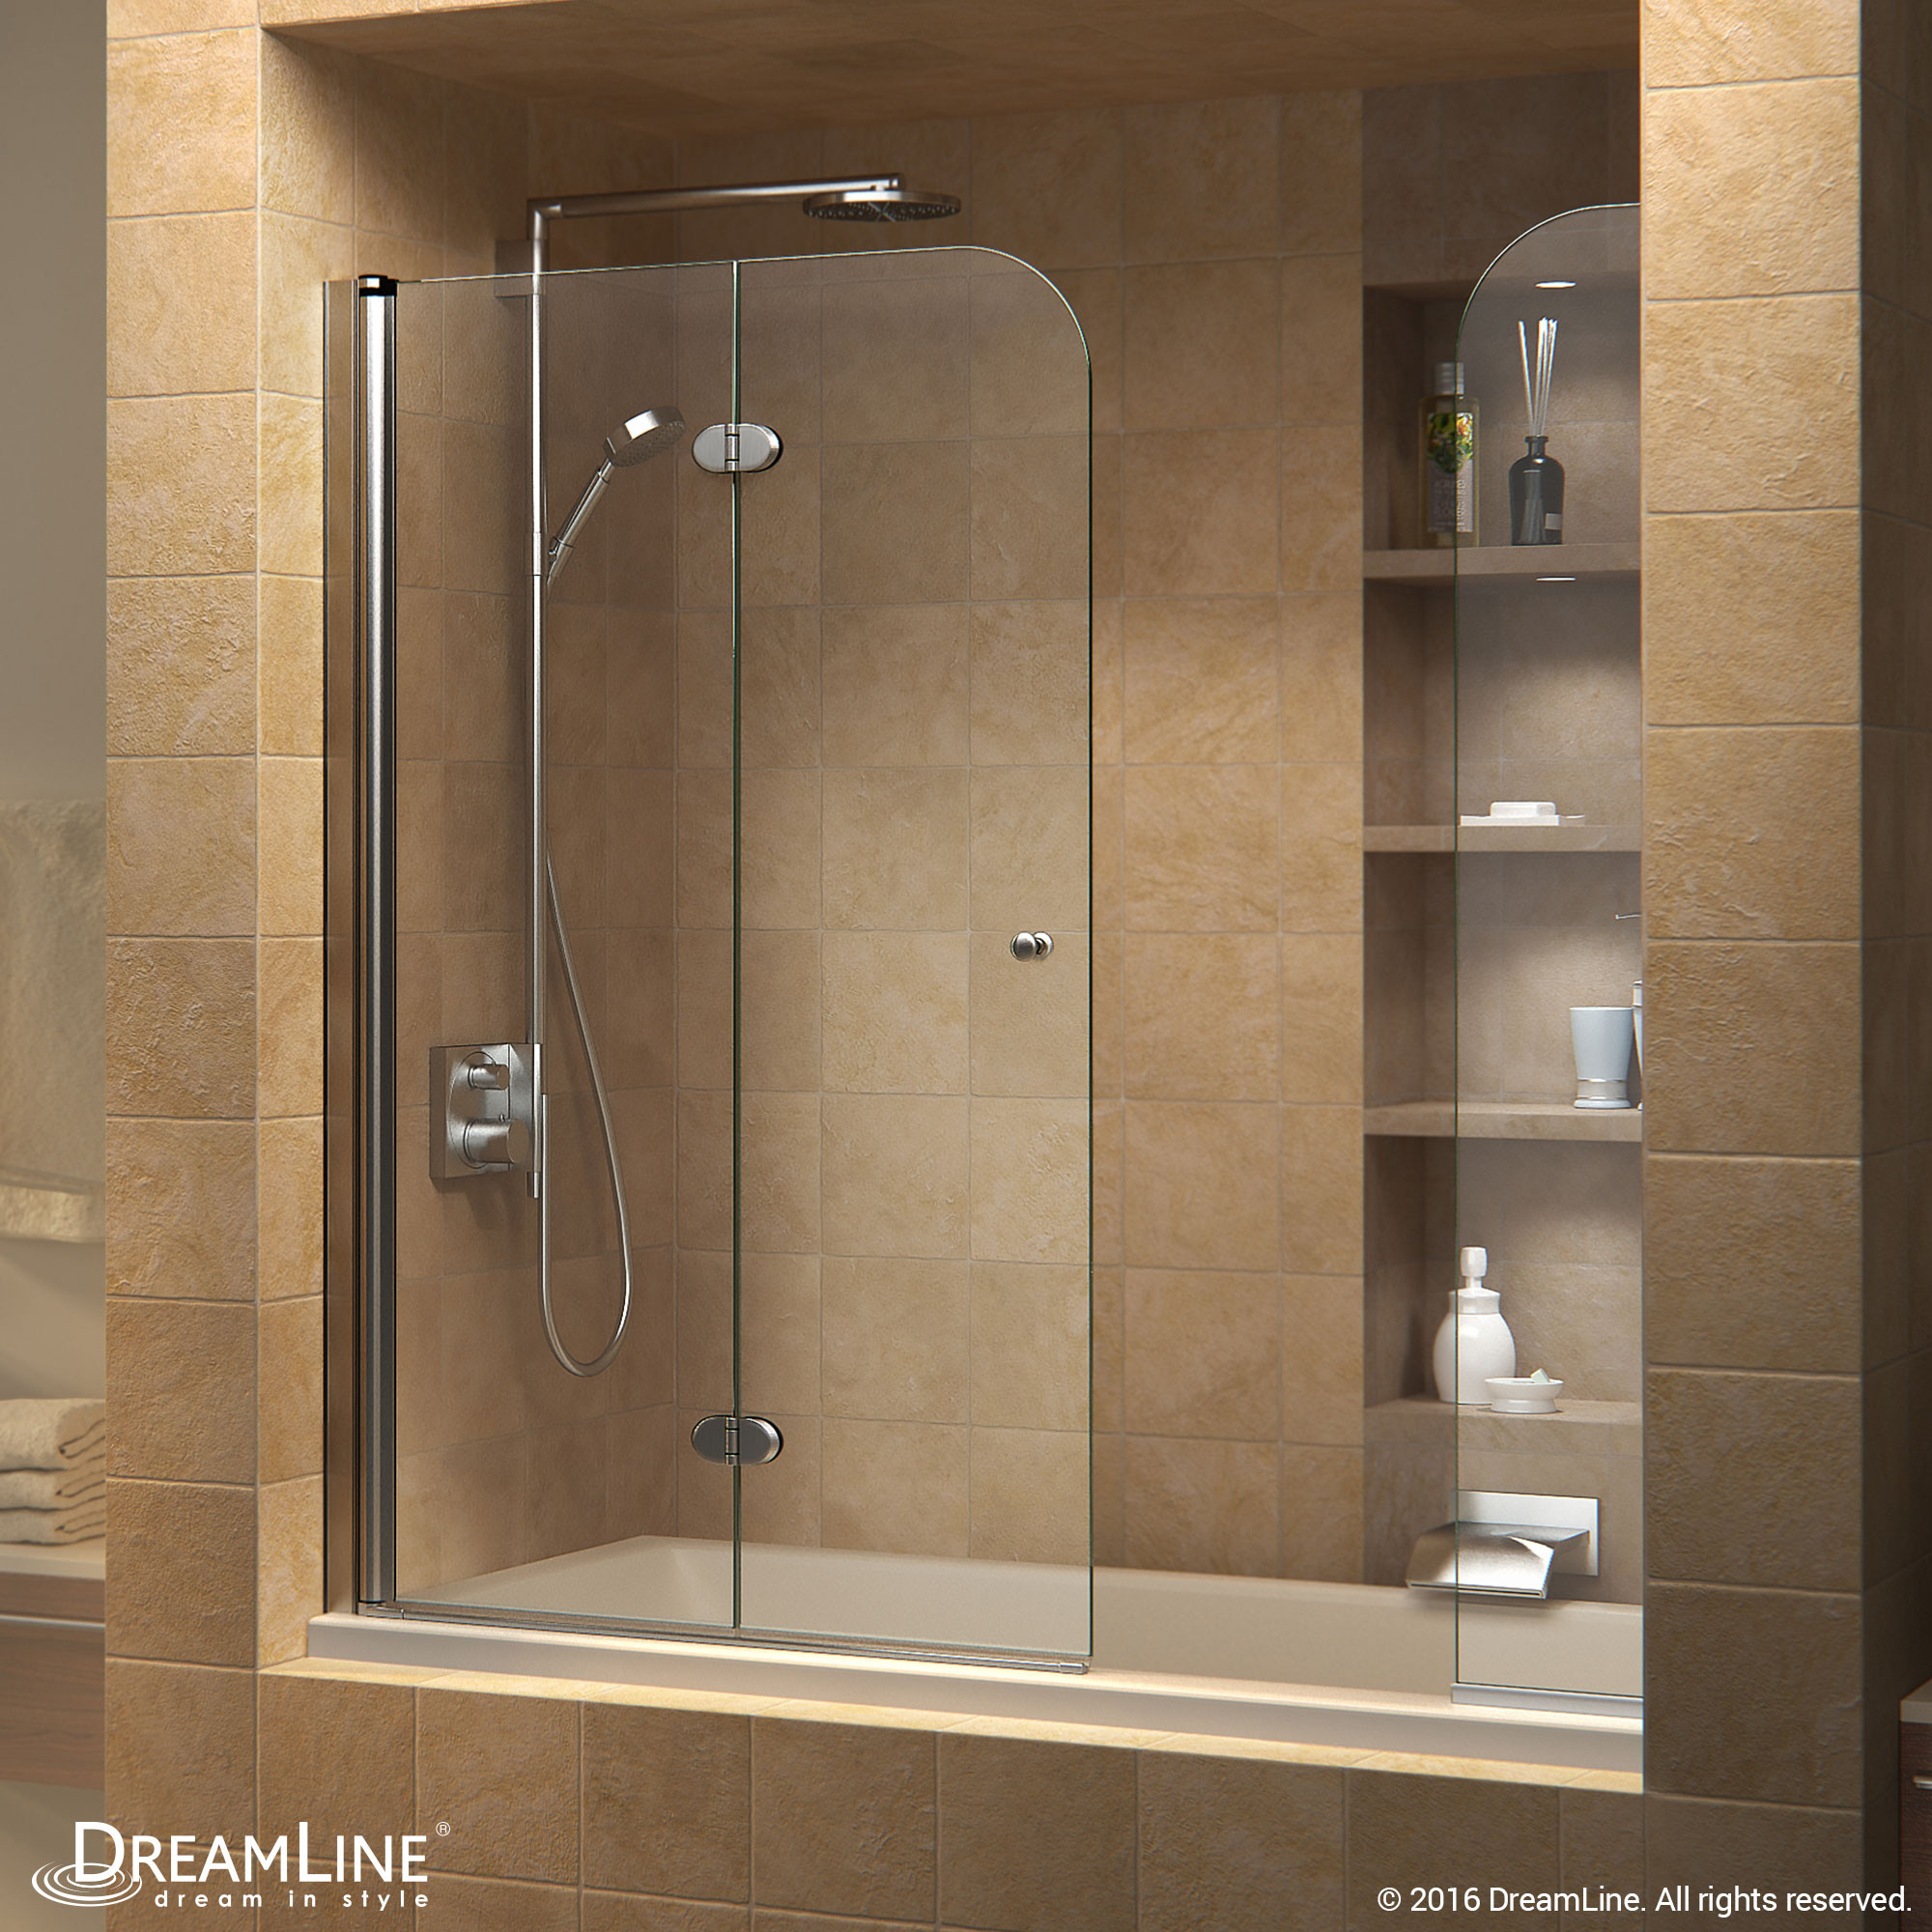 DreamLine SHDR-3636580-EX-01 Chrome Aqua Fold 56 to 60 in. W x 58 in. H Hinged Tub Door